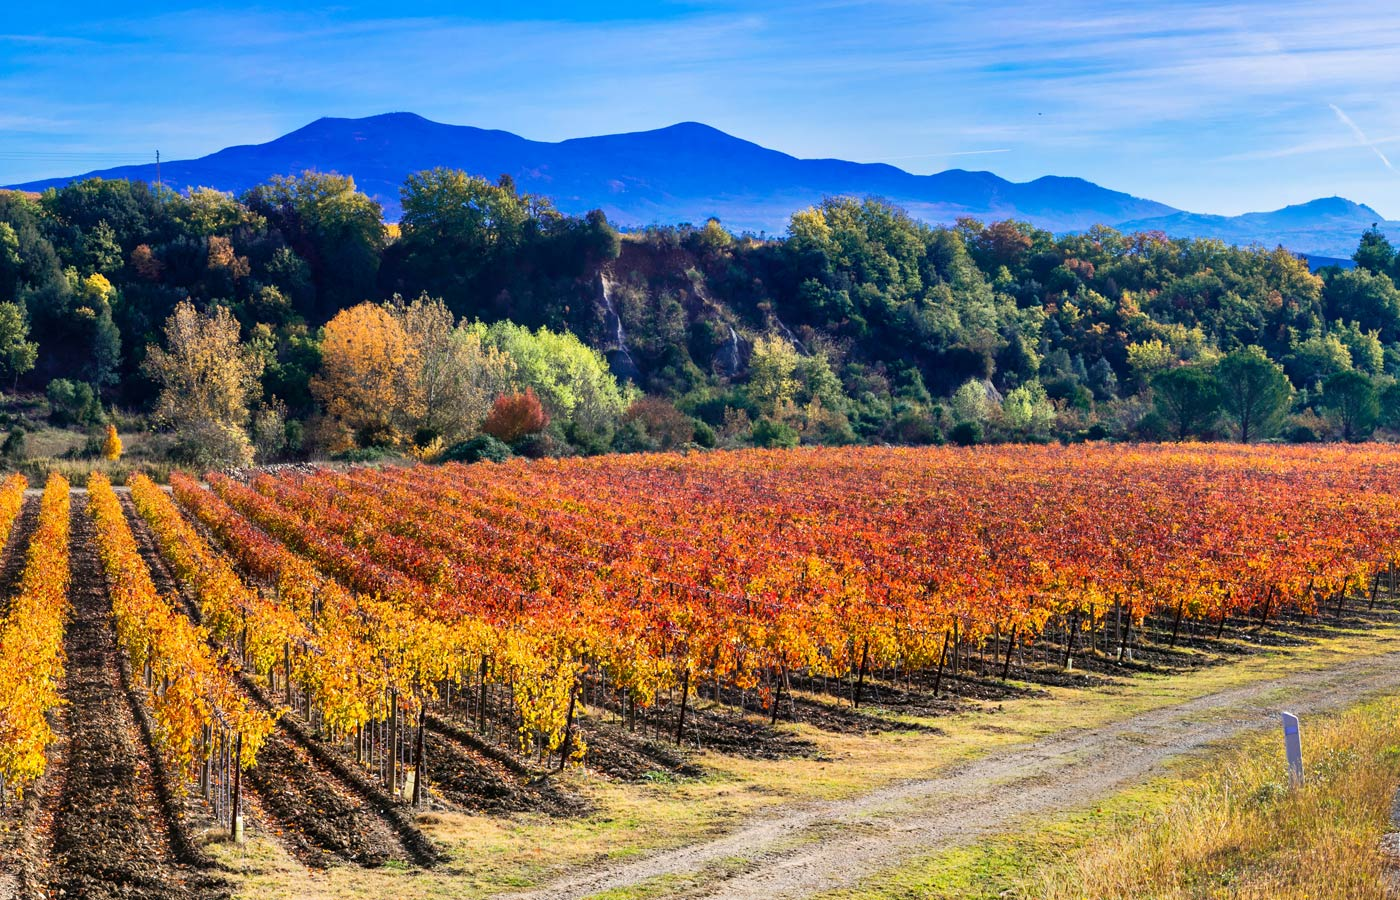 What to do in Montepulciano in autumn